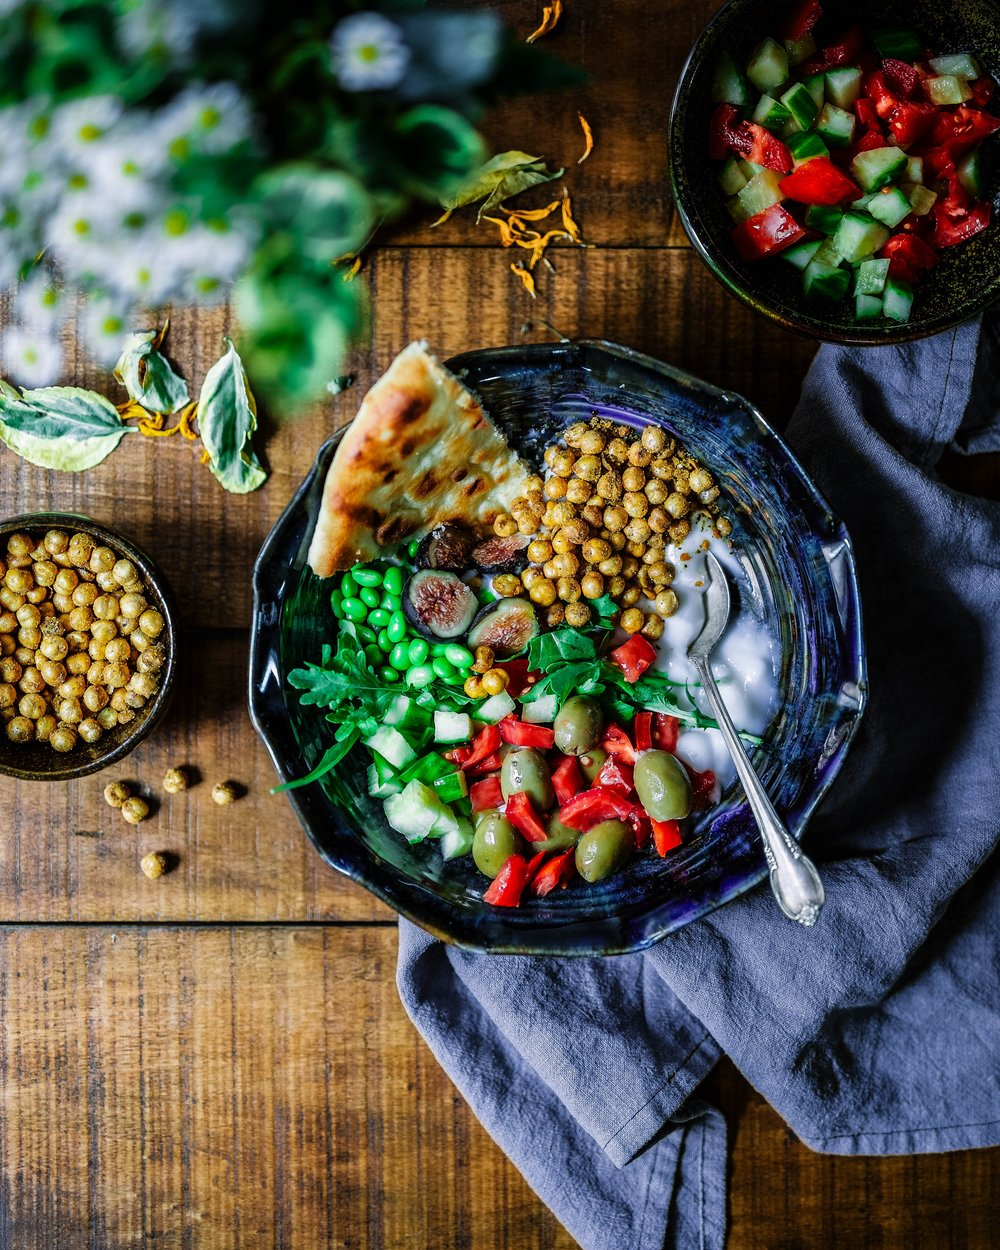 VEGANUARY 2018 - The future of health and wellness is a plant-based lifestyle.